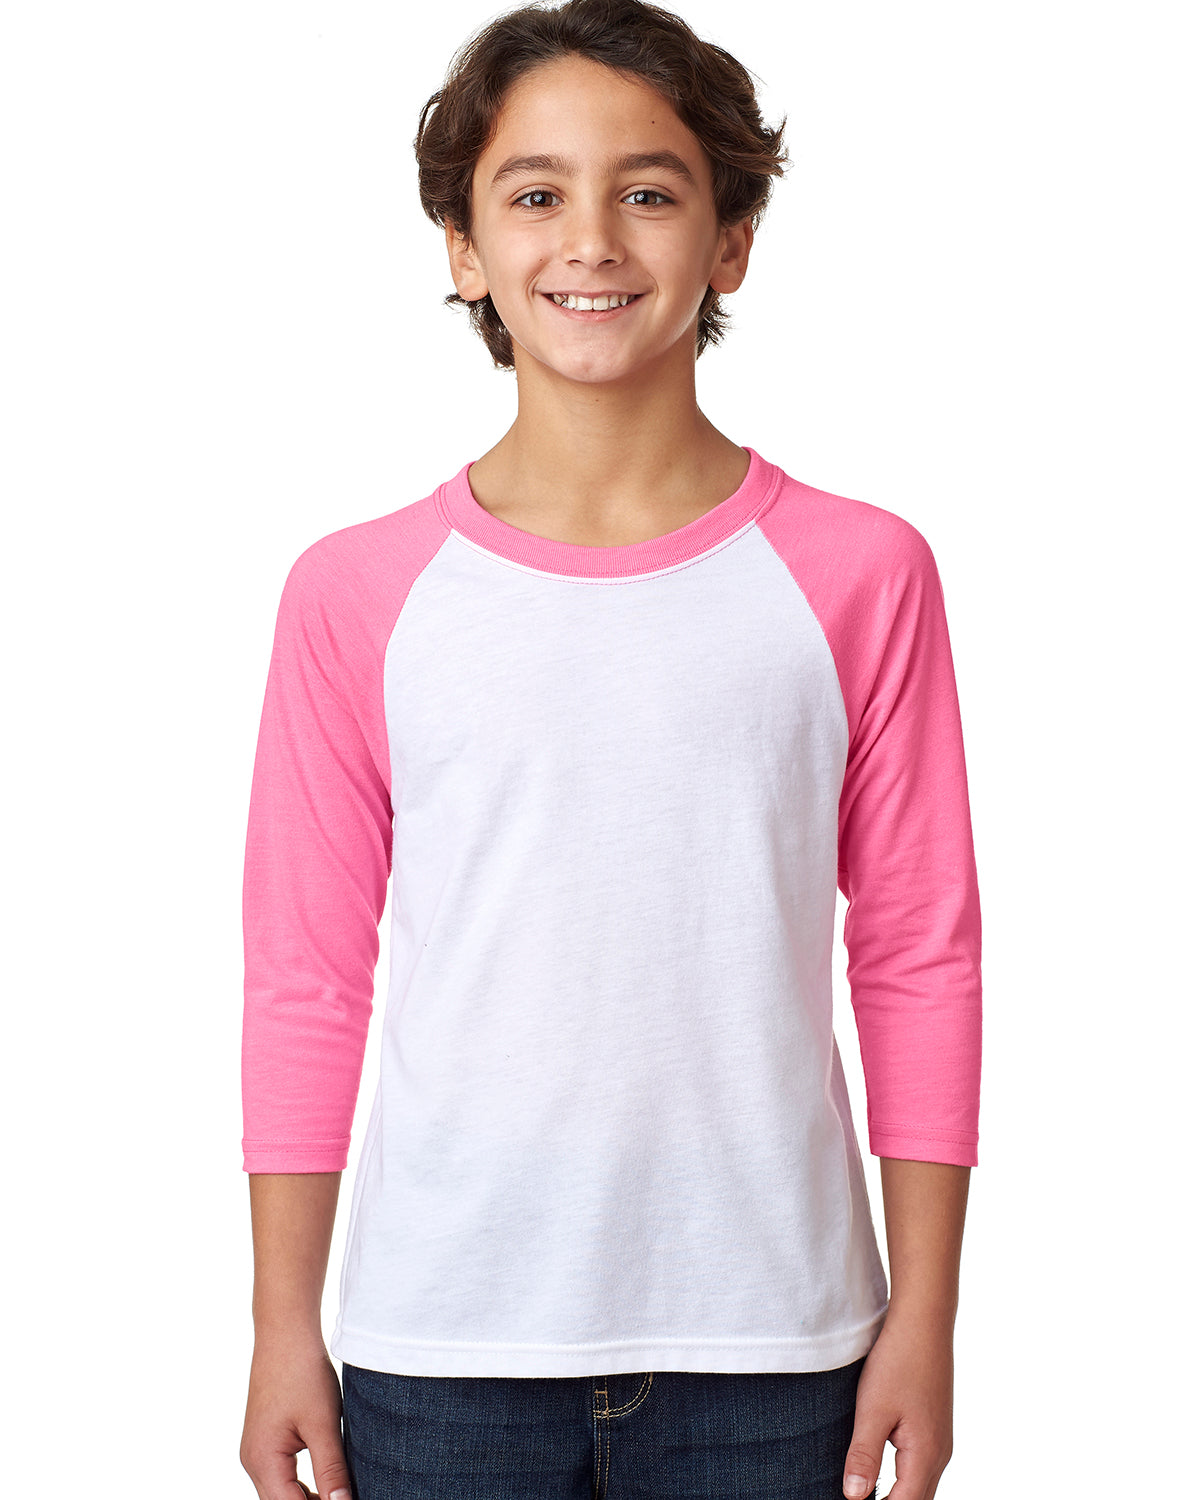 Youth 3/4 Sleeve Raglan Baseball T-Shirt